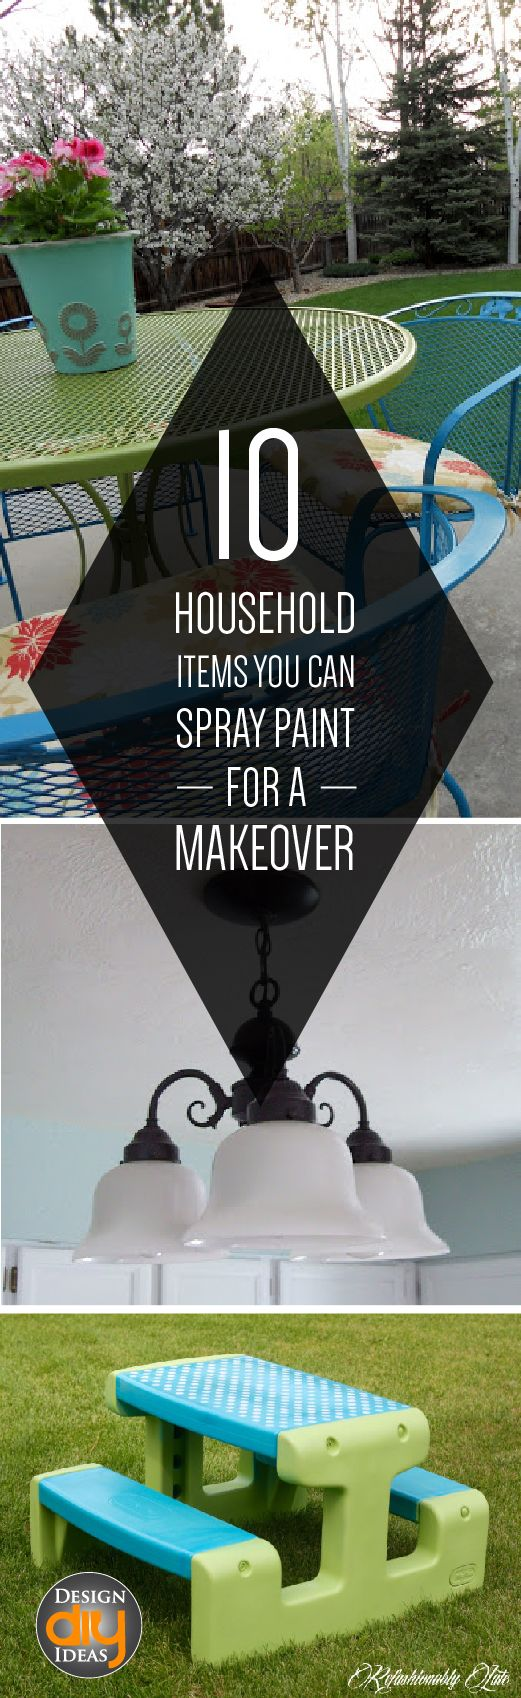 Best 25+ Household items ideas on Pinterest | Decorative household ...